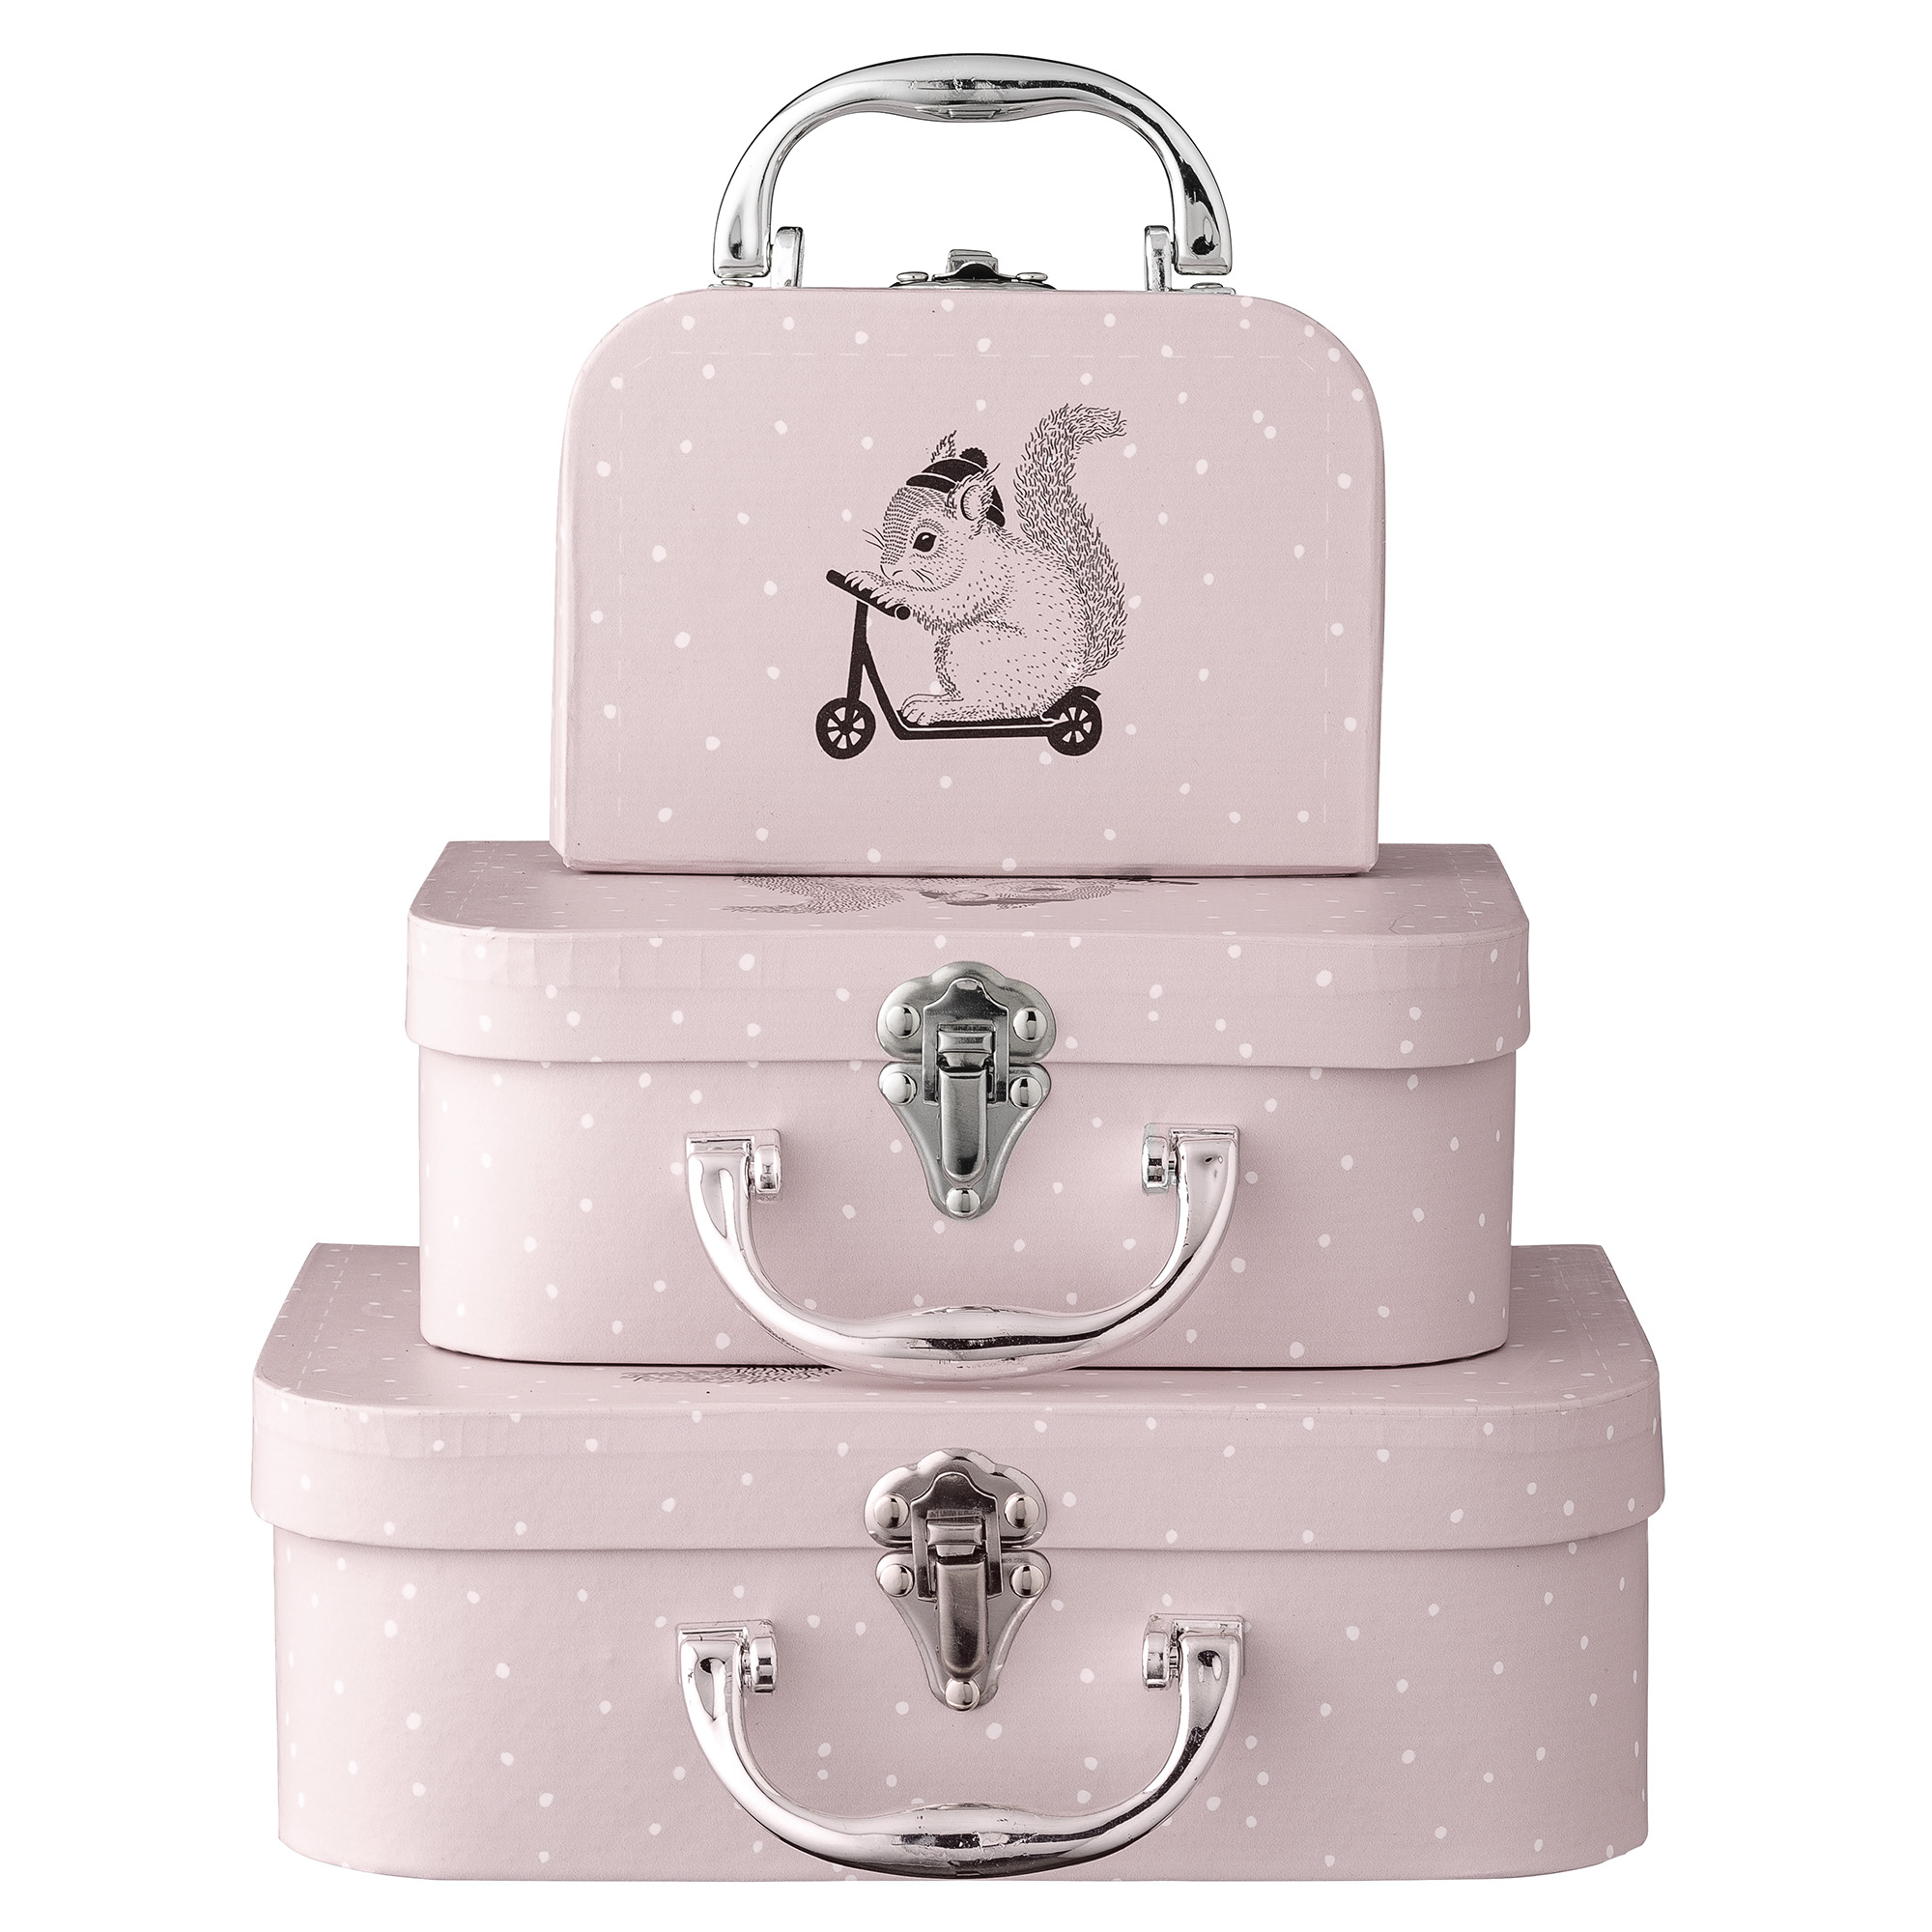 Children pink suitcases